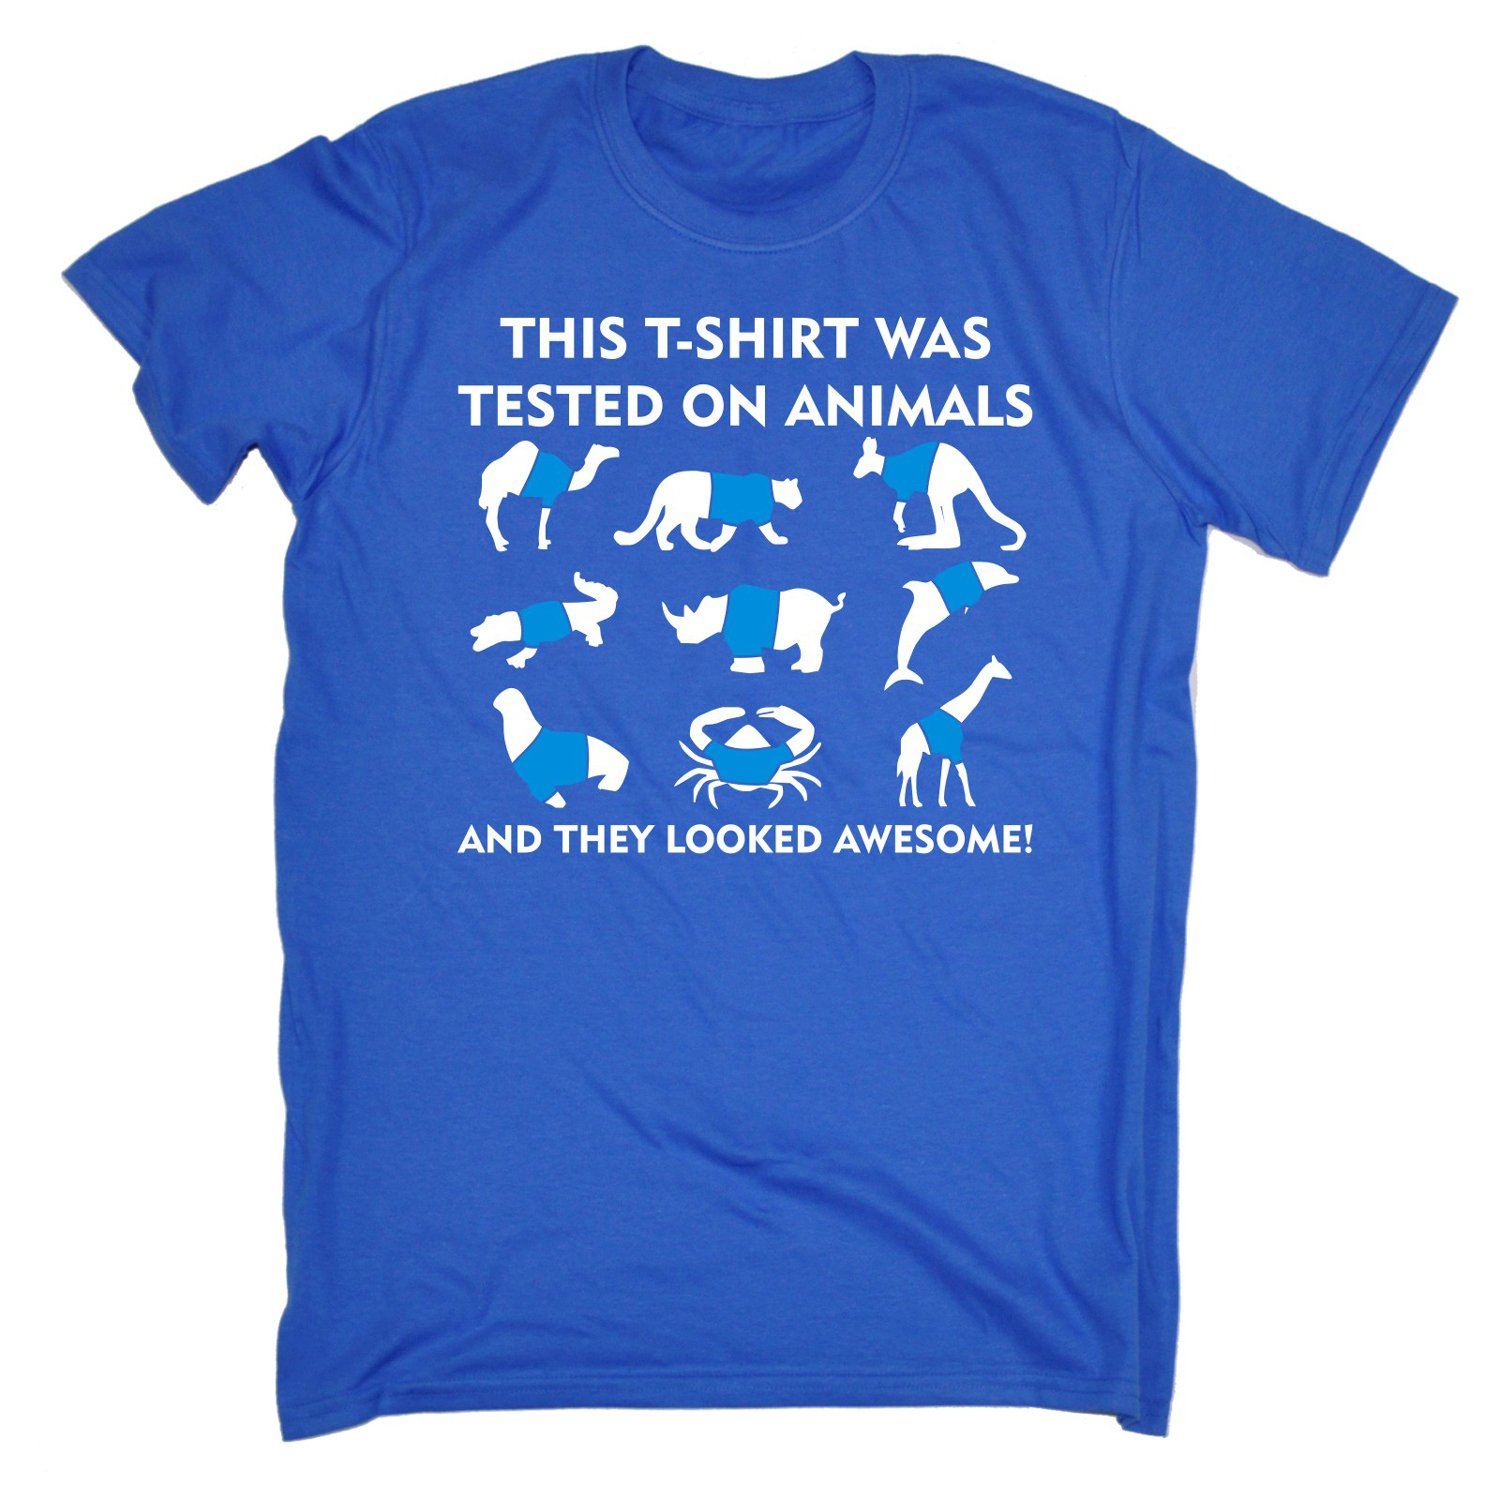 This T-Shirt was Tested On Animals - Funny Novelty T Shirt